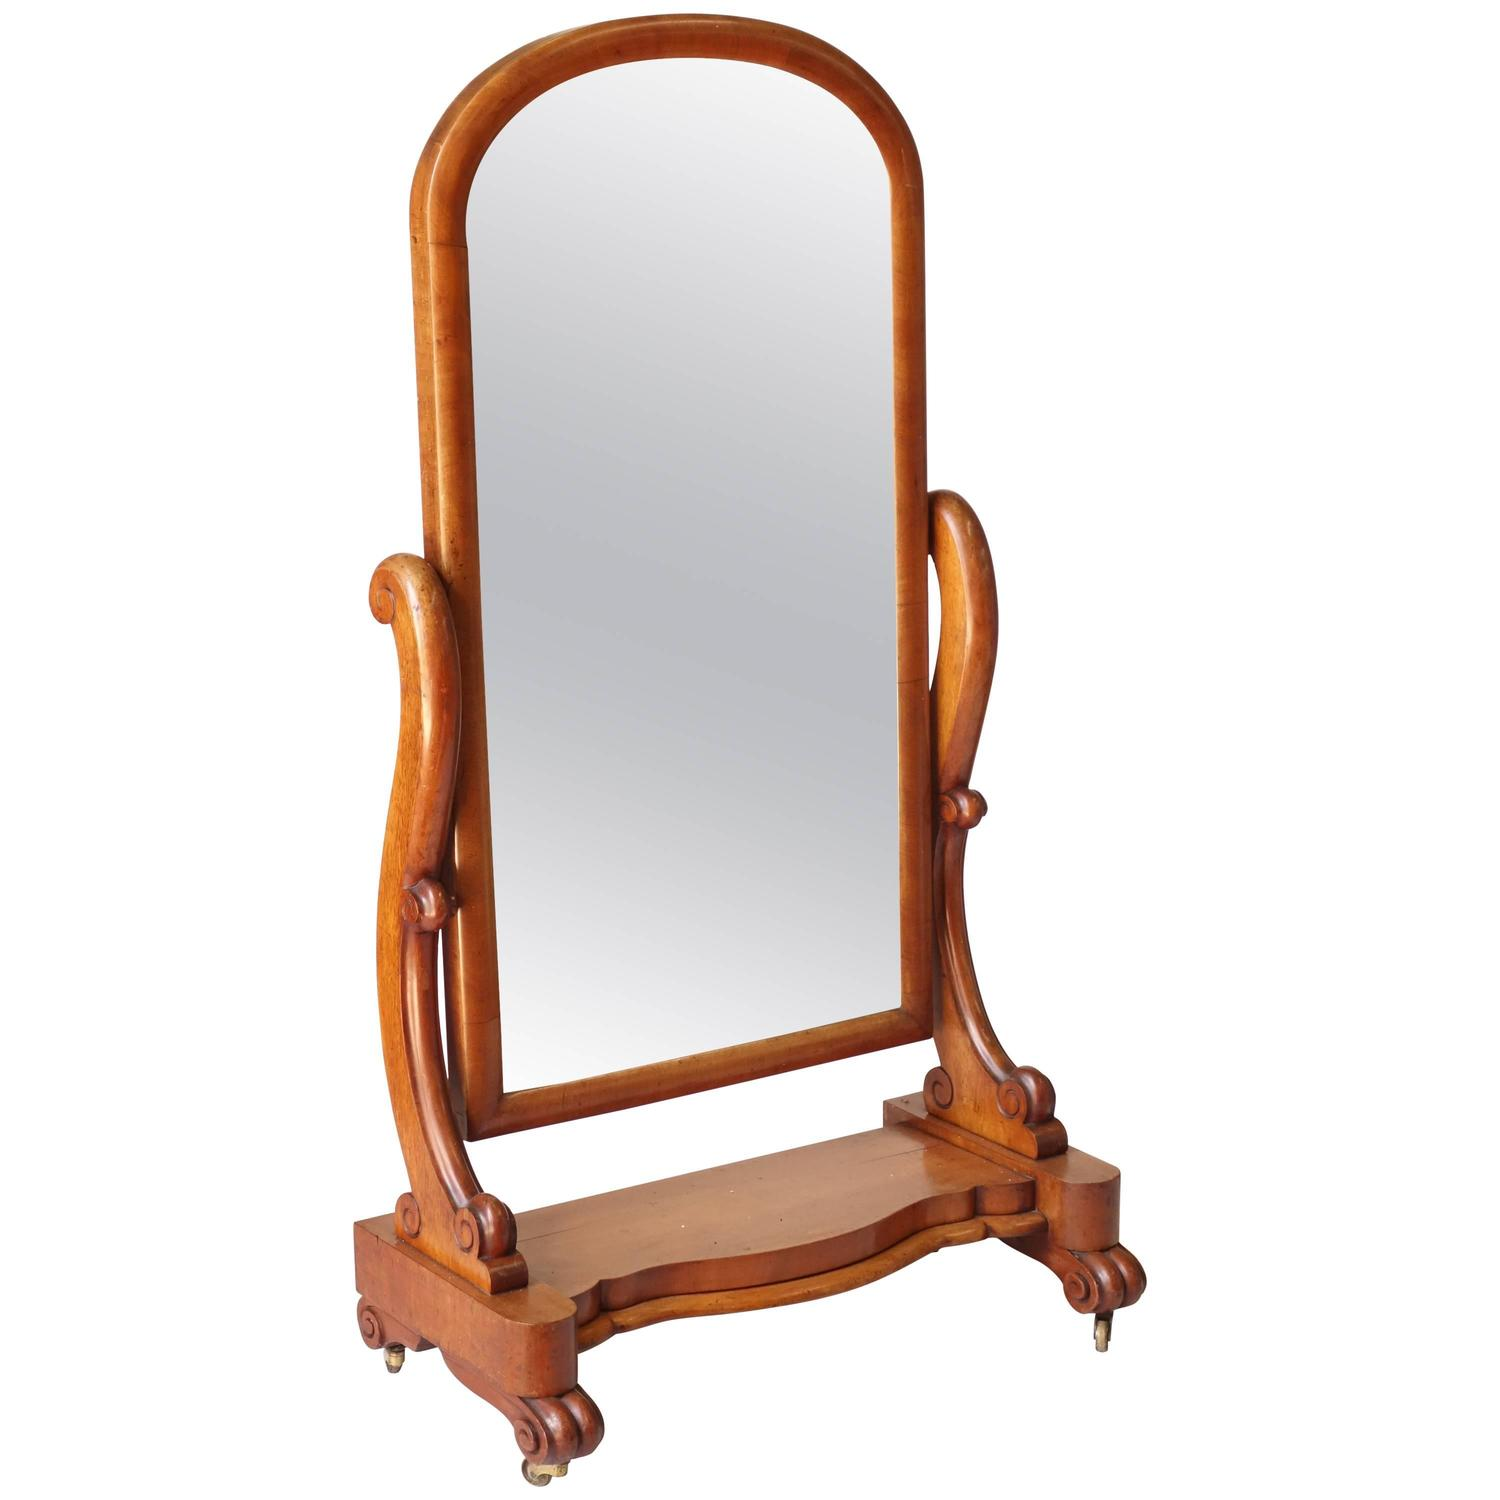 Victorian floor standing mirror for sale at 1stdibs for Mirrors for sale